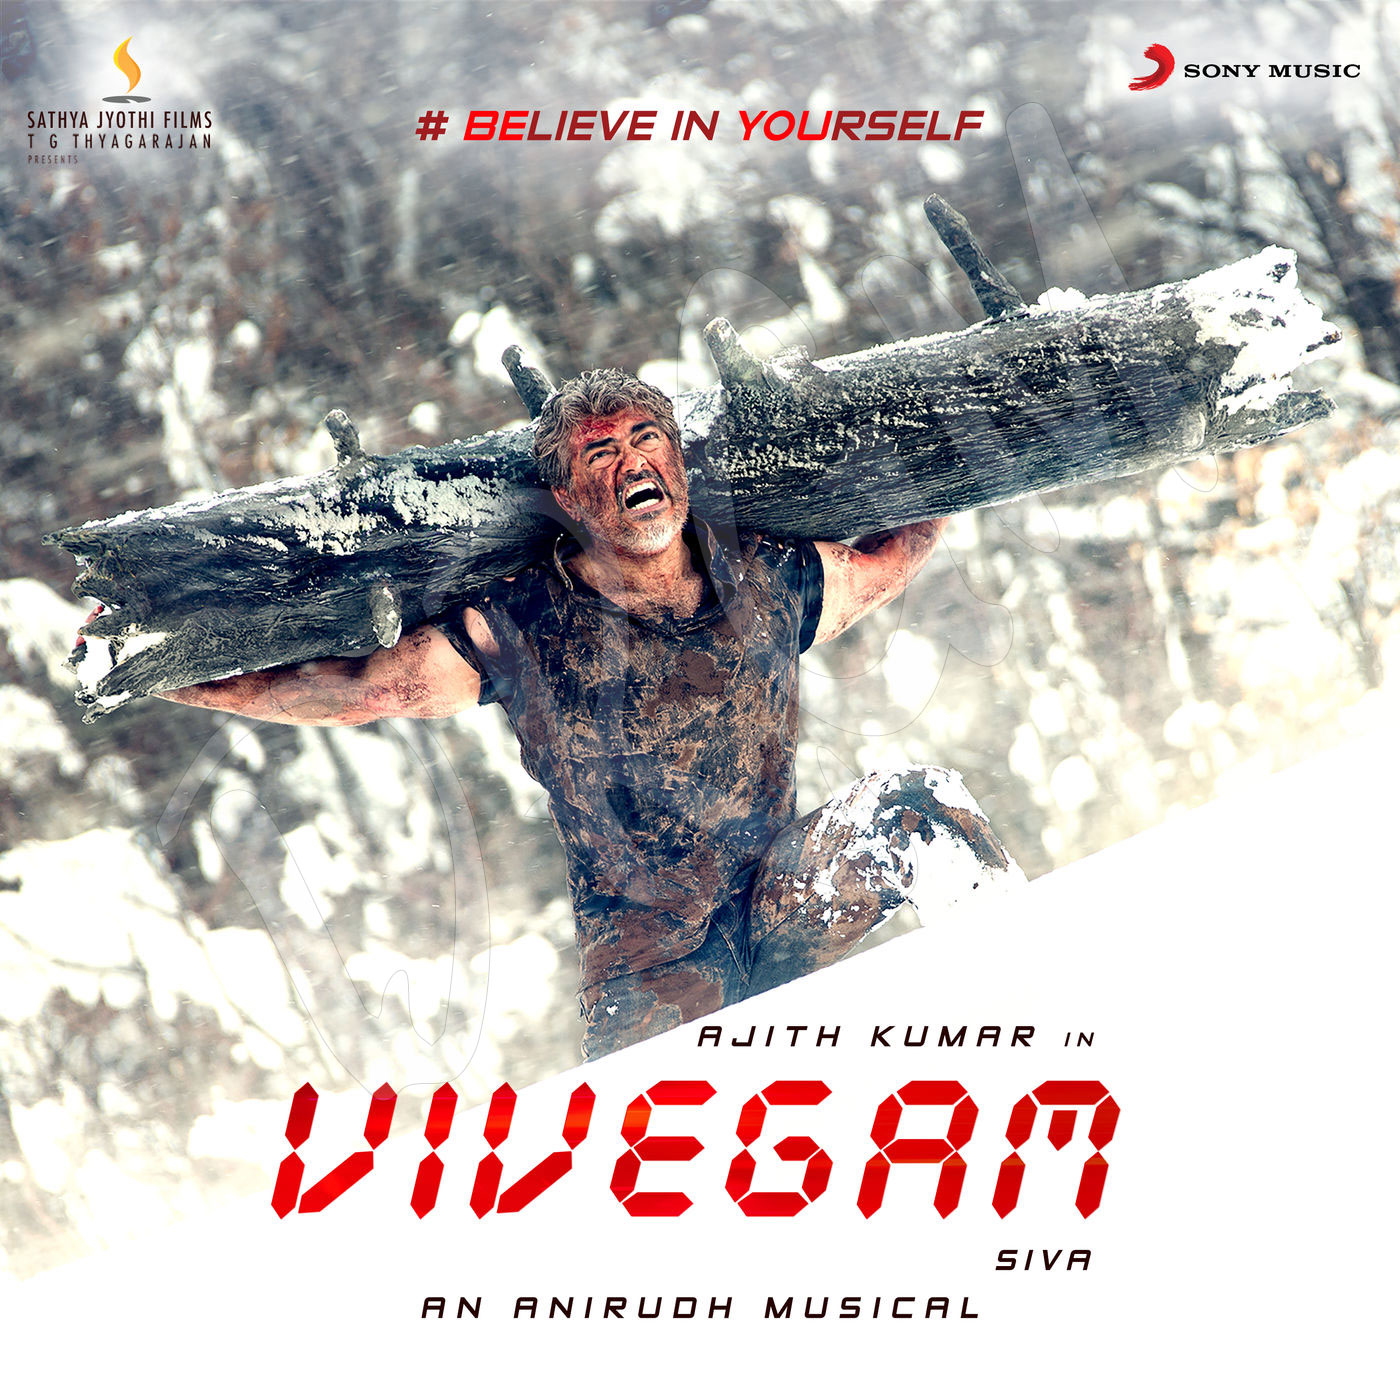 Vivegam-(2017)-Original-Album-Front-Cover-Poster-wallpaper-New-HD